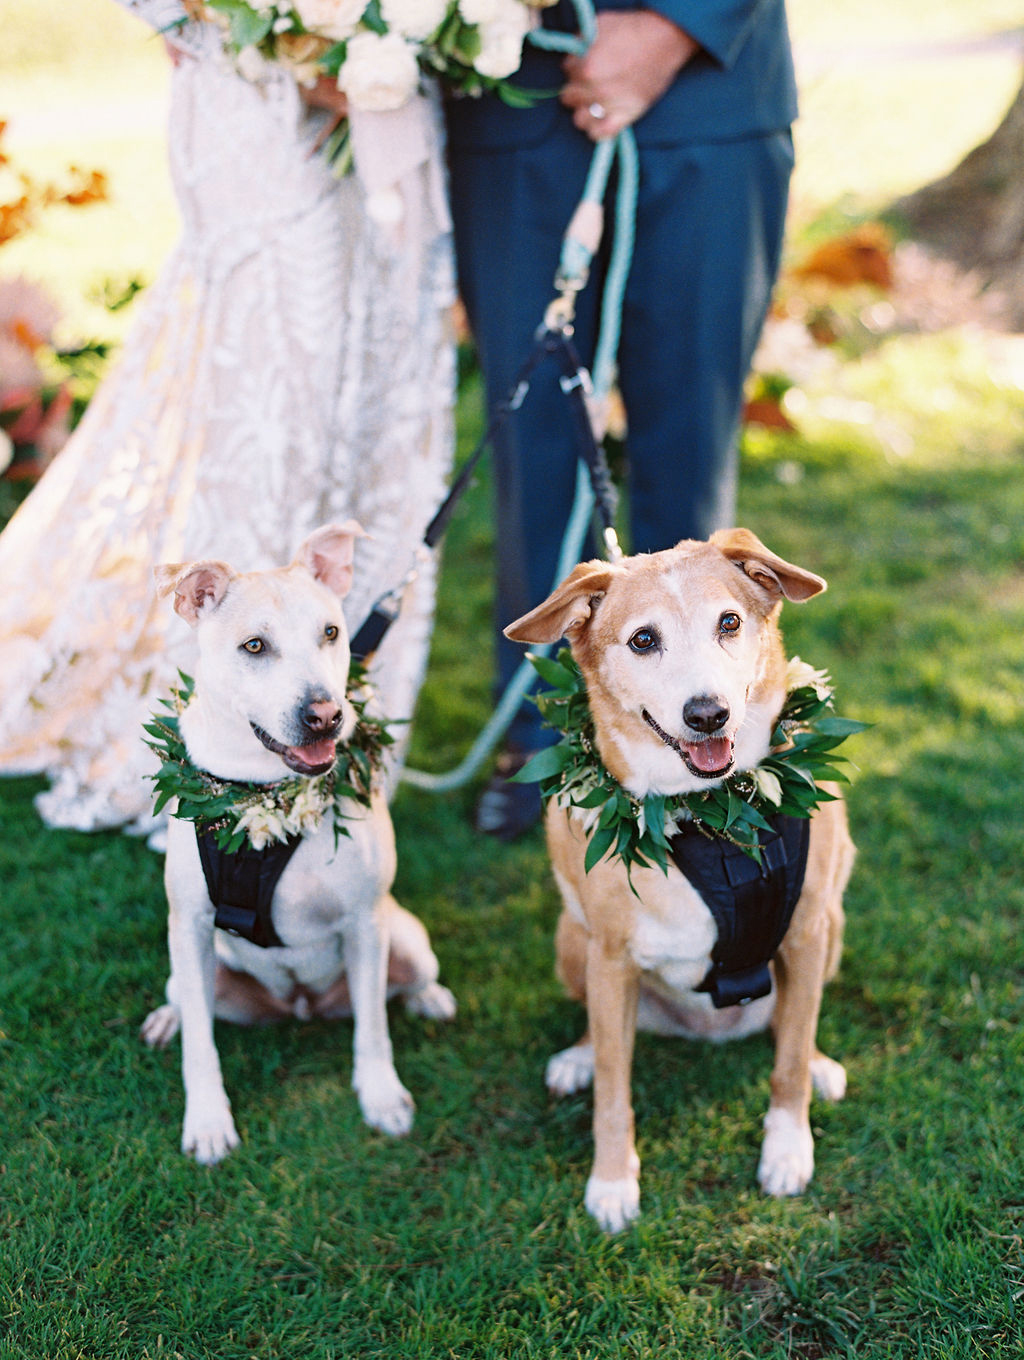 sara trisdan wedding dogs wearing greenery wreaths